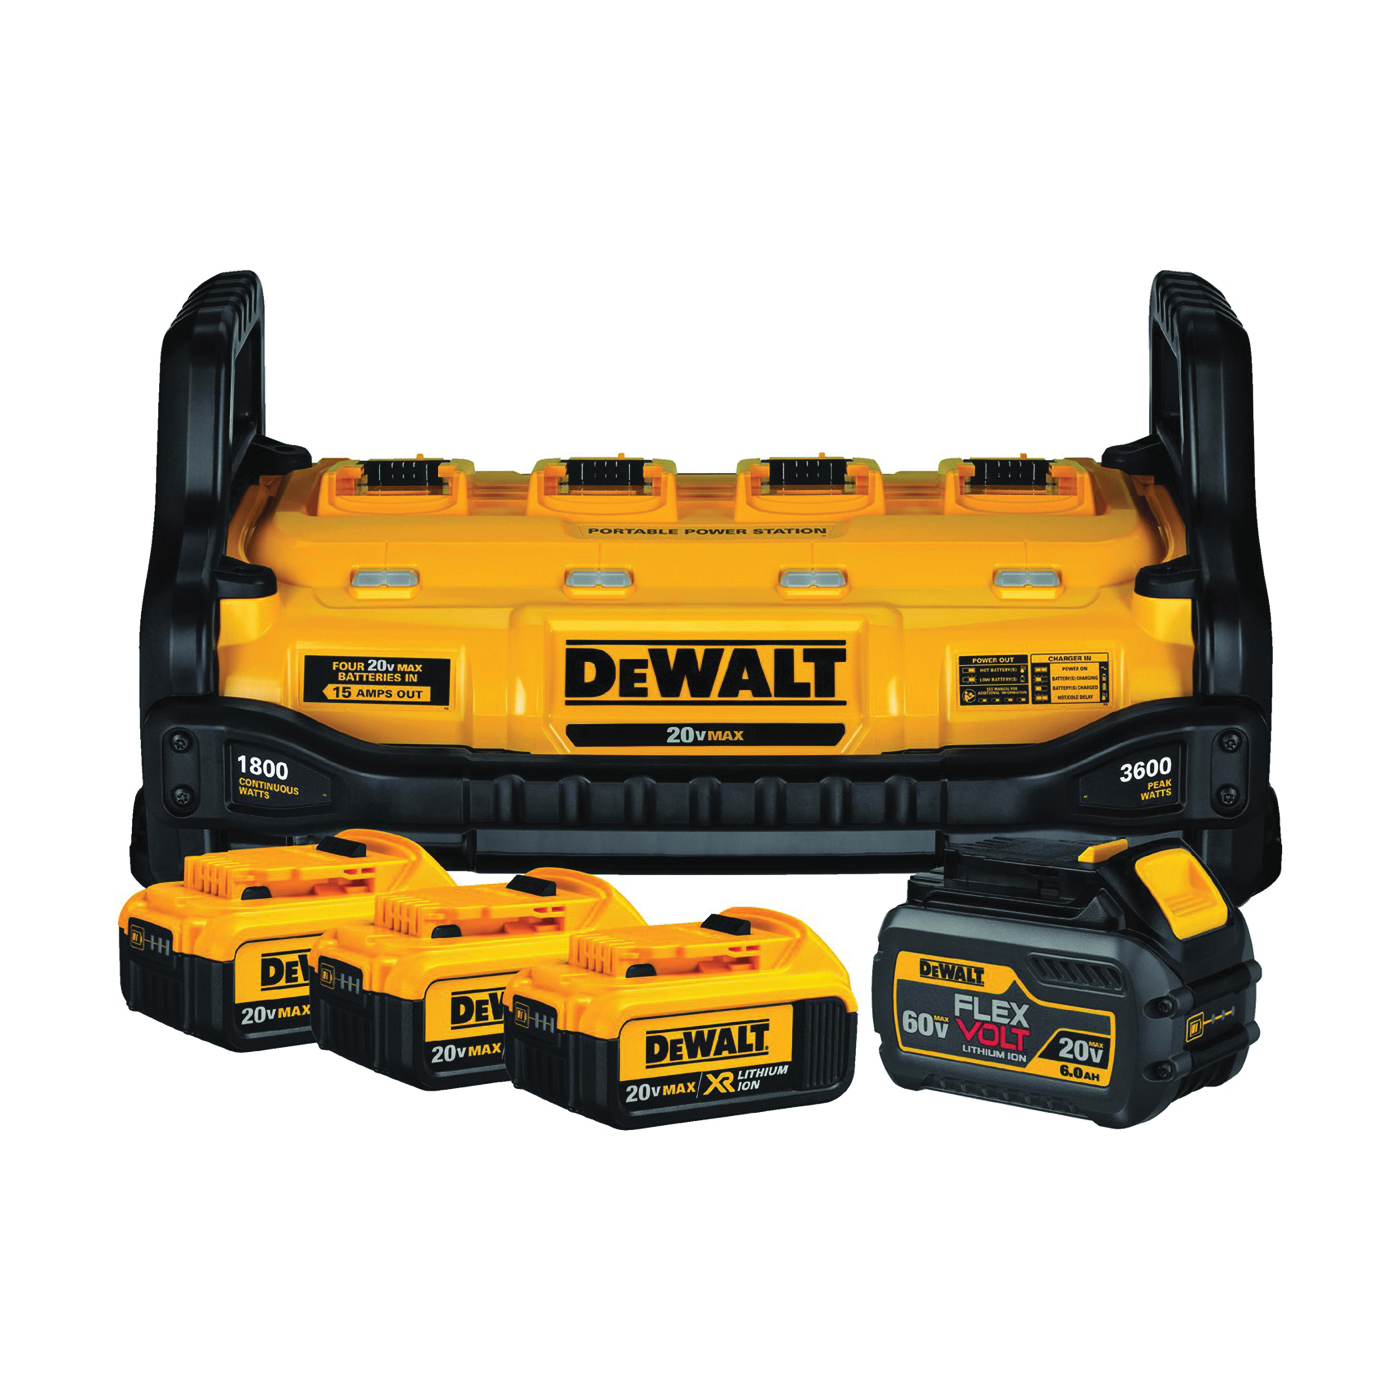 Picture of DeWALT DCB1800M3T1 Power Station and Simultaneous Battery Charge Kit, 4, 6 Ah, 2 Charge, Battery Included: No